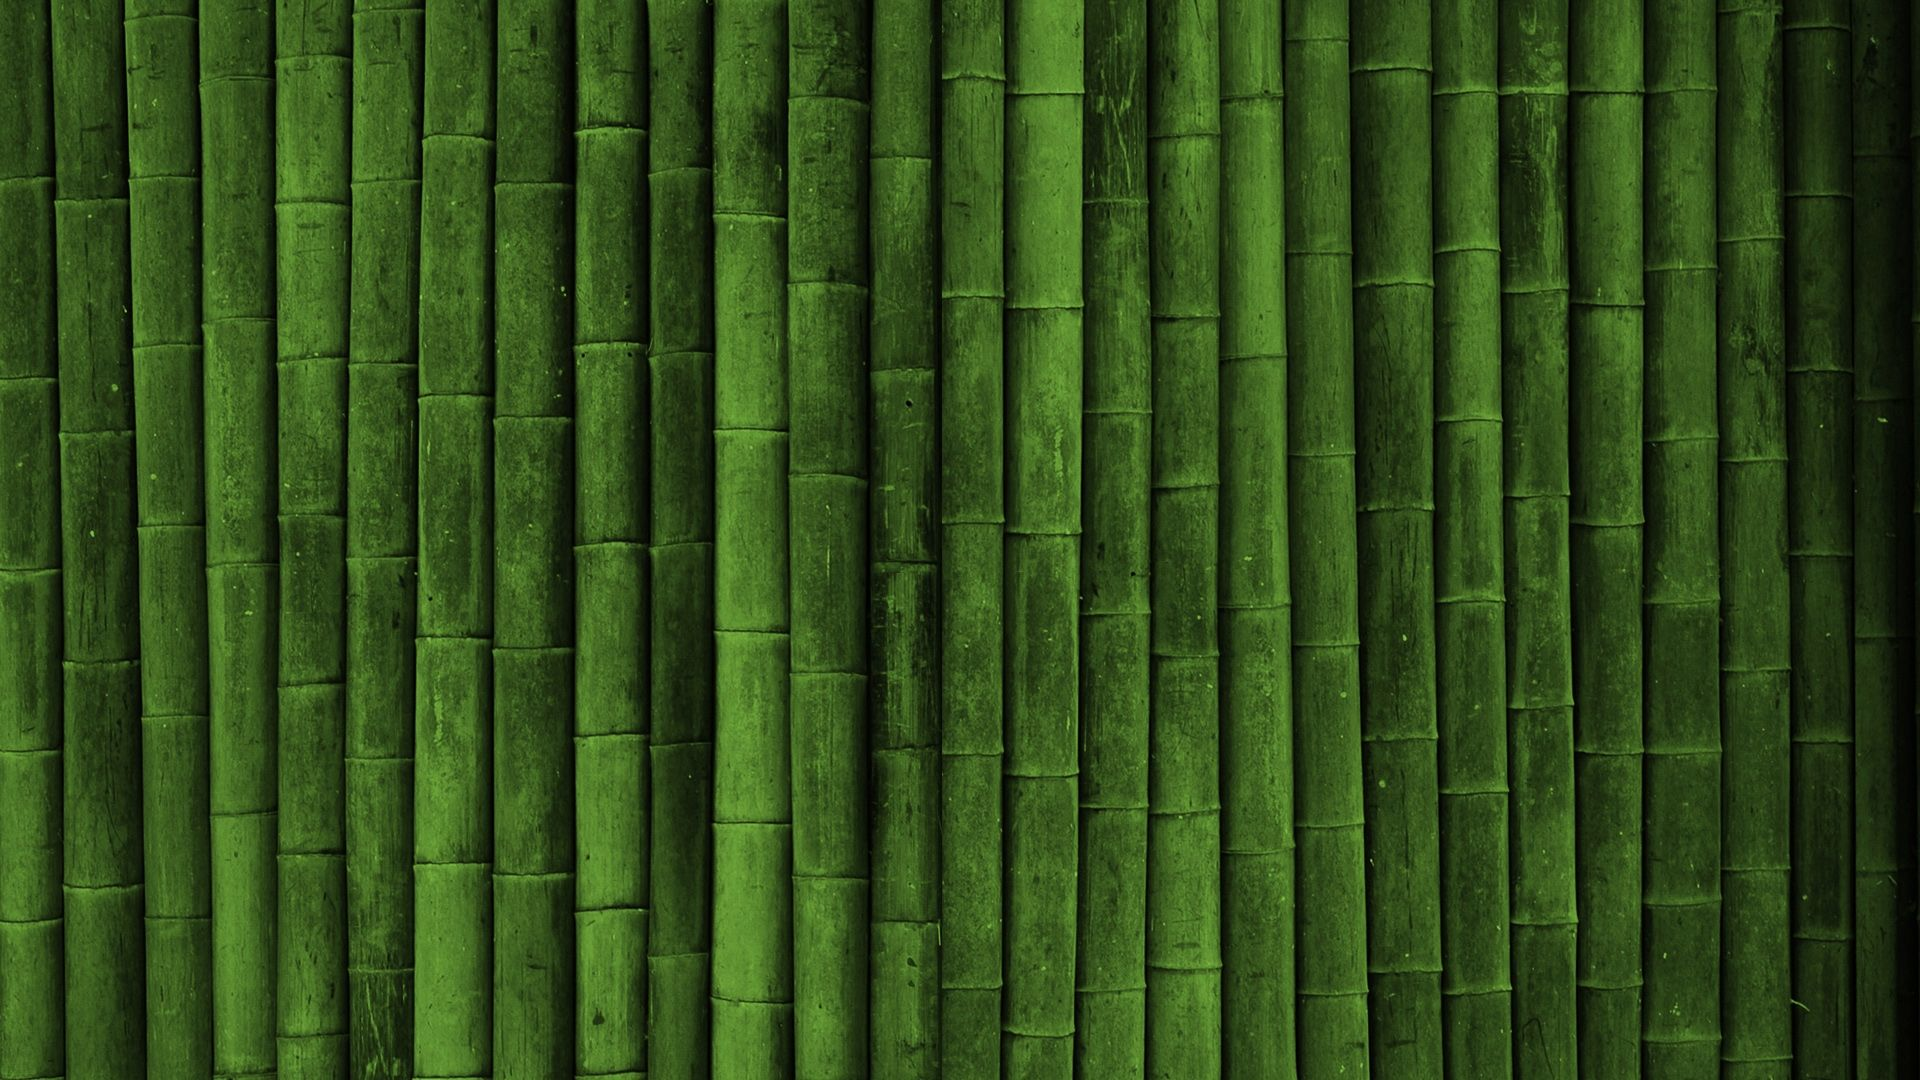 Free-Download-HD-Green-for-Windows-and-Mac-Systems-1920%C3%971080-Green-HD-Backgrounds-W-wallpaper-wp3405876